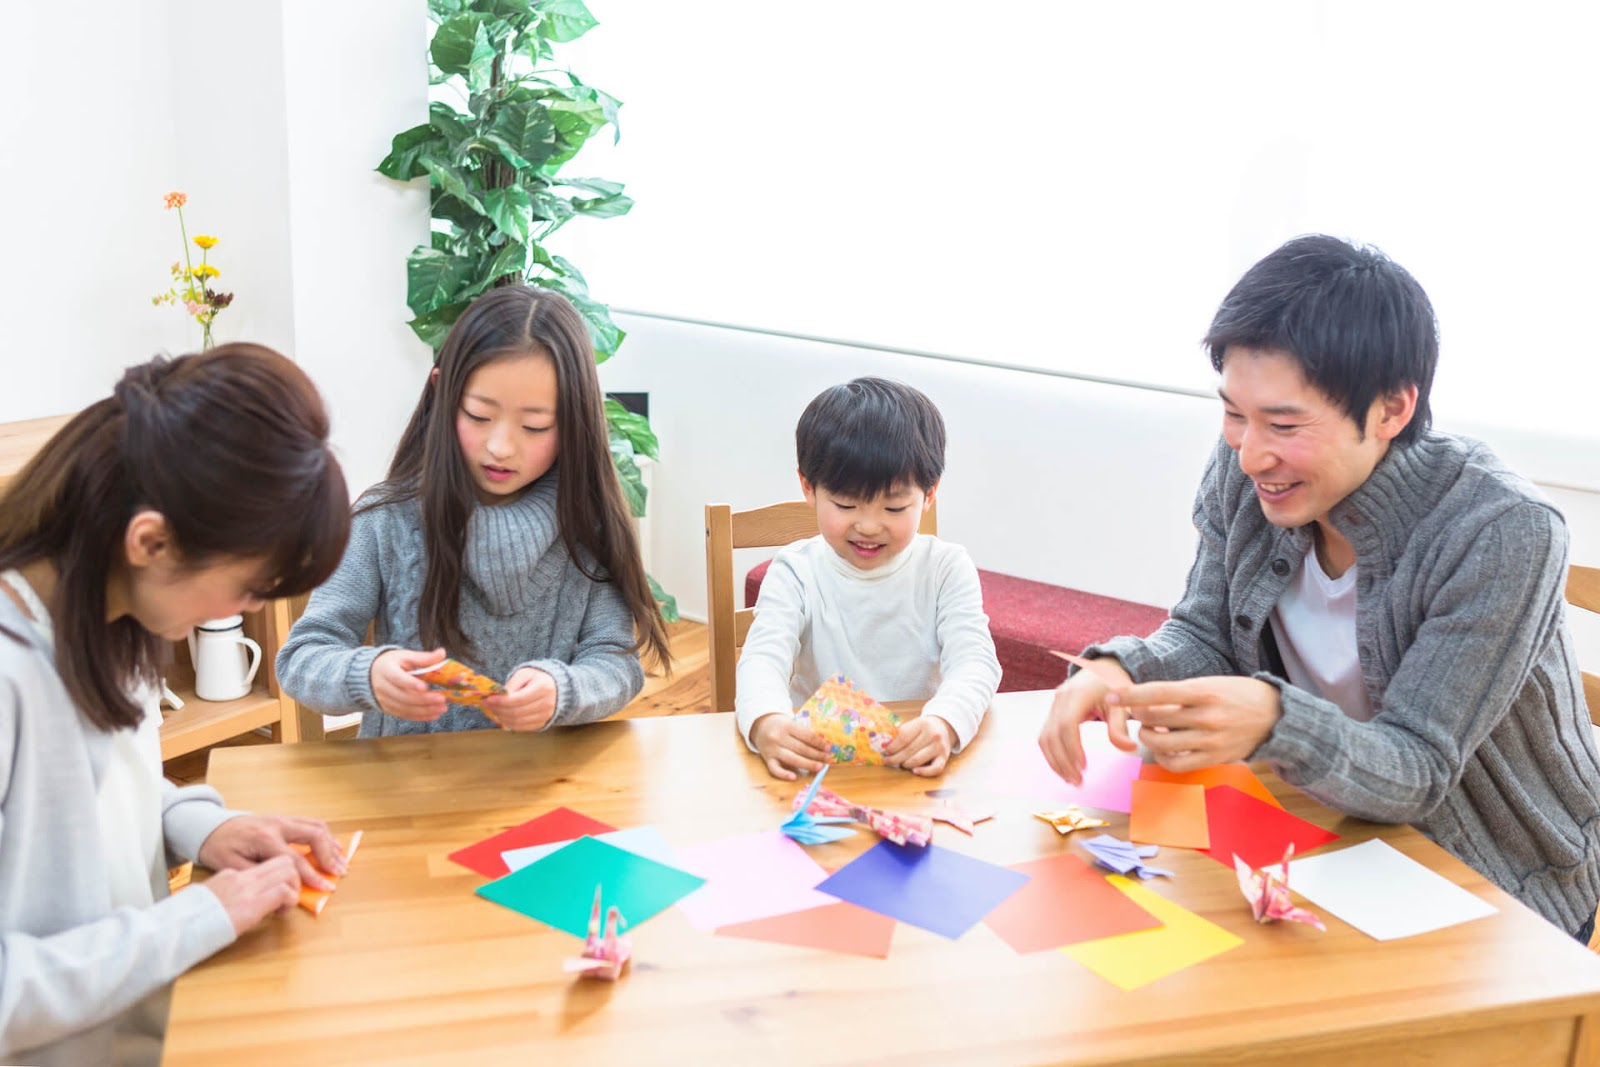 Family learning origami together